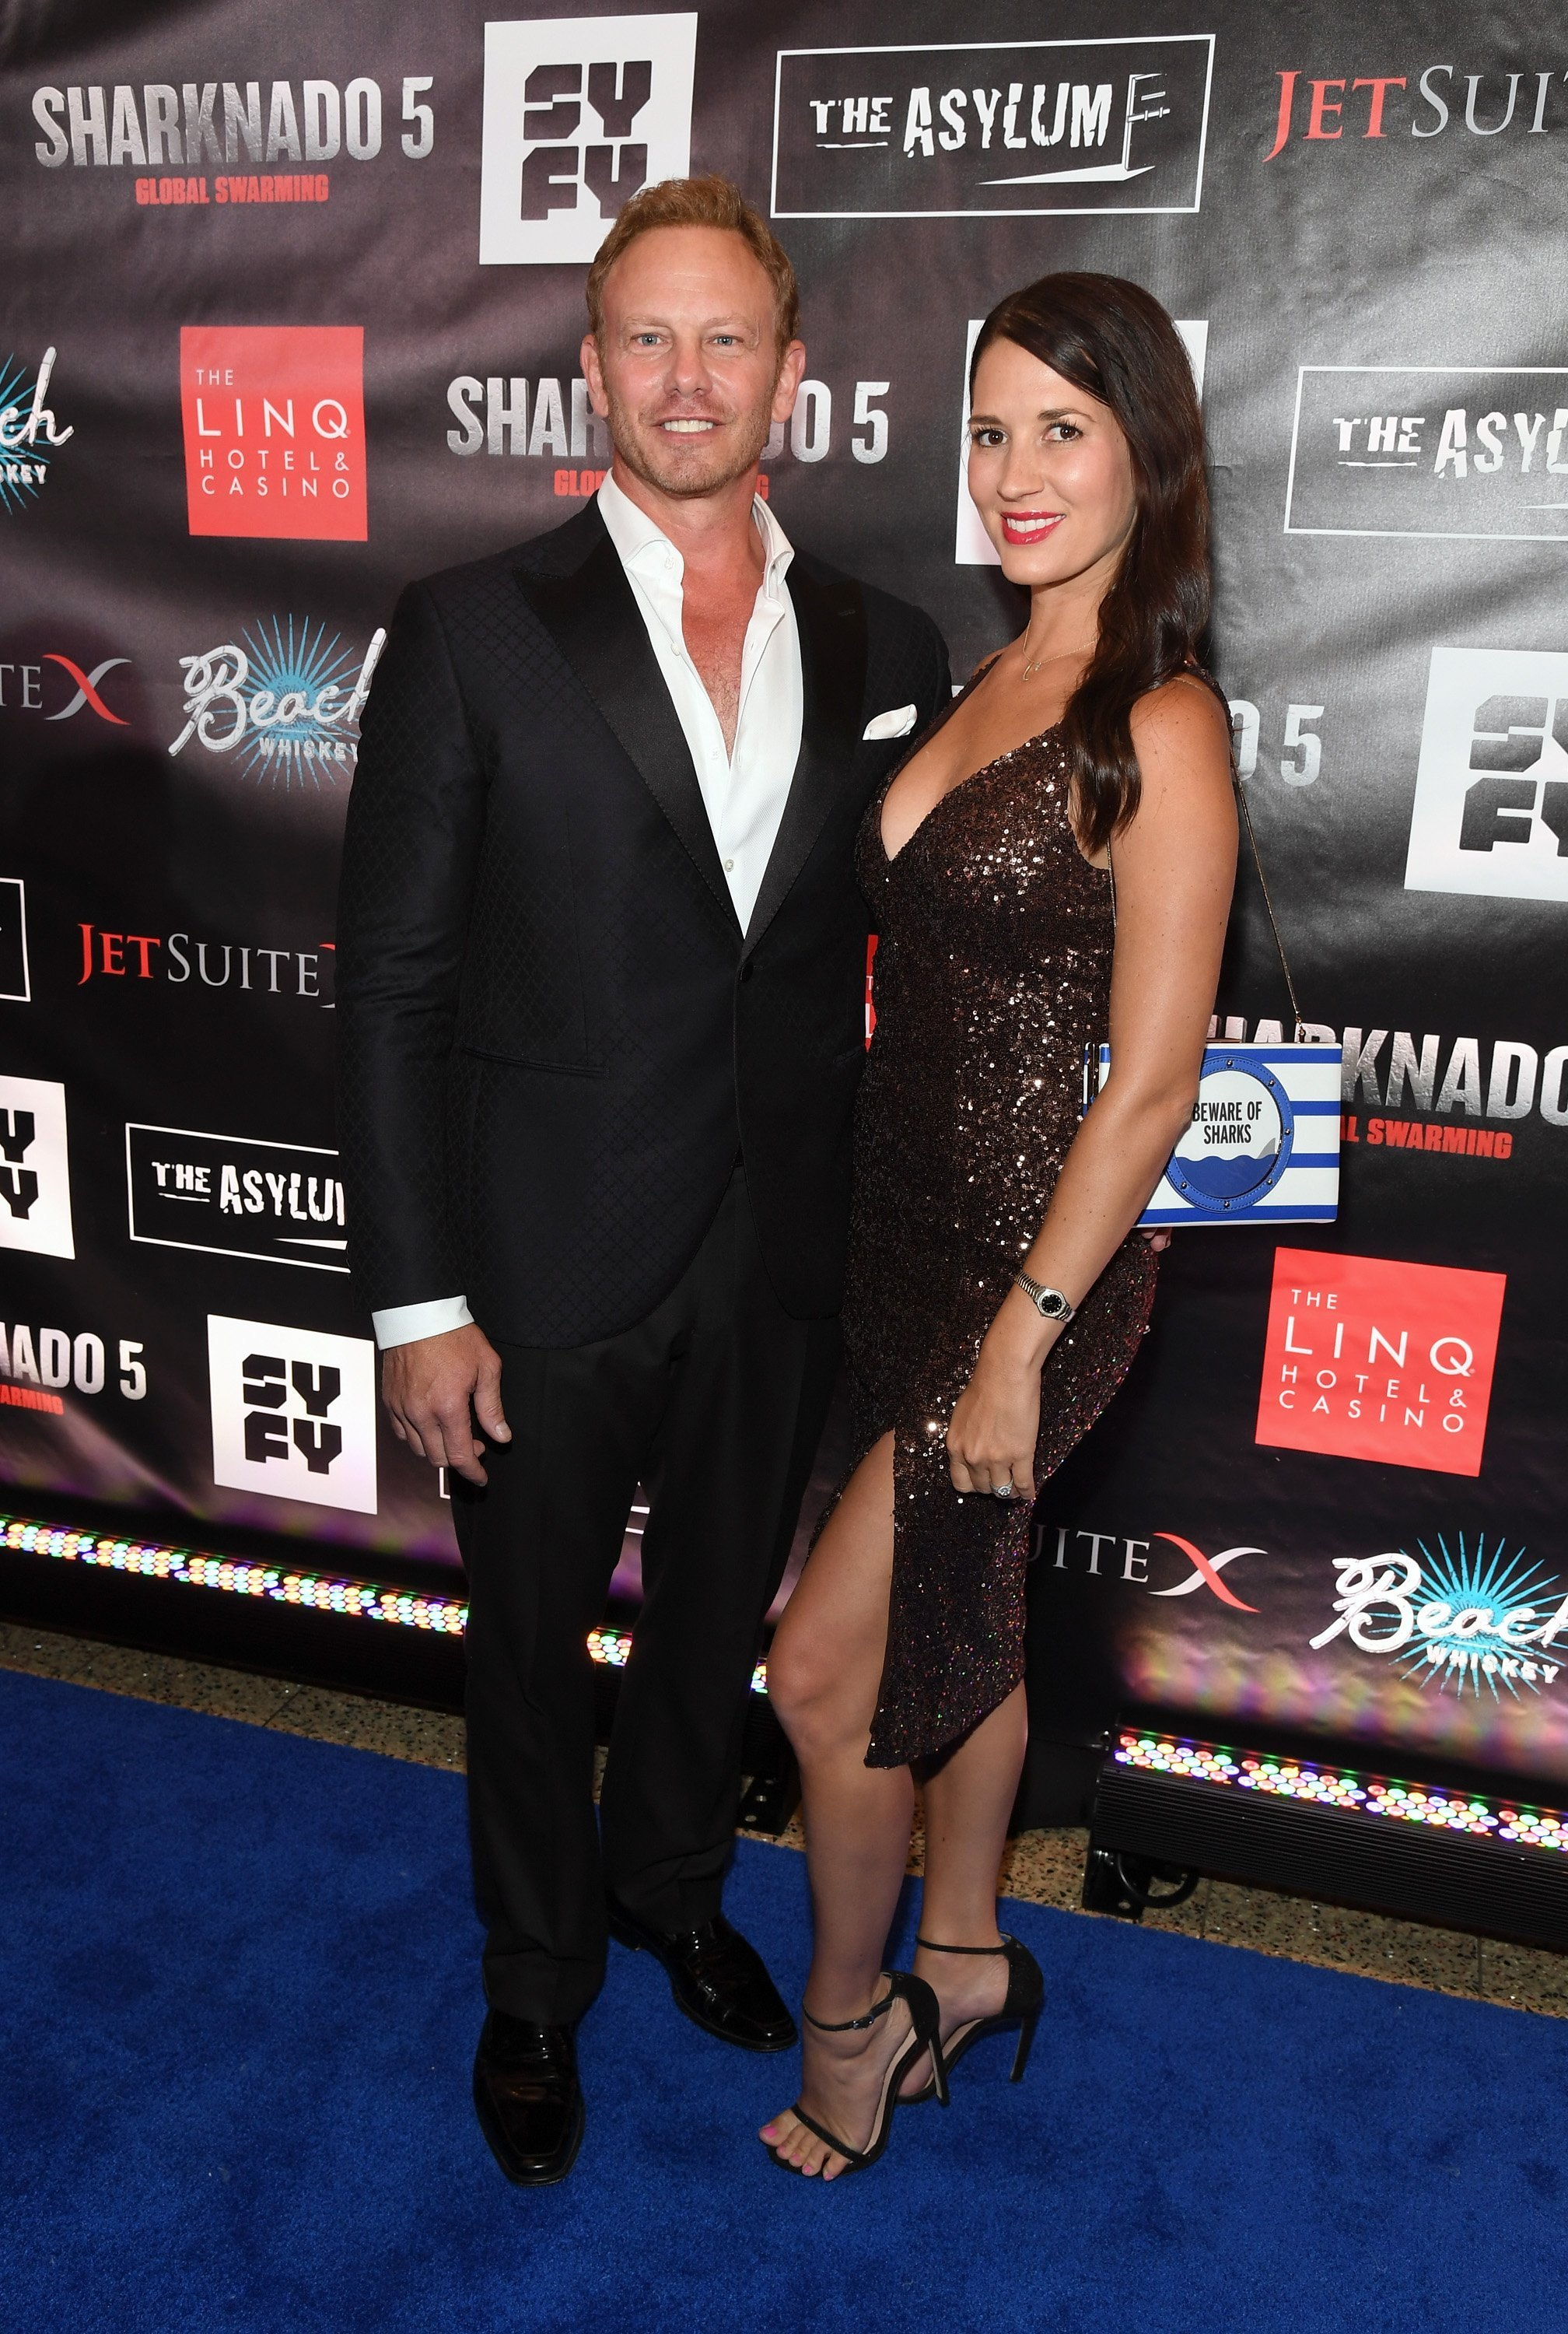 """Ian Ziering and his wife Erin Kristine Ludwig attend the premiere of """"Sharknado 5: Global Swarming"""" on August 6, 2017, in Las Vegas, Nevada. 